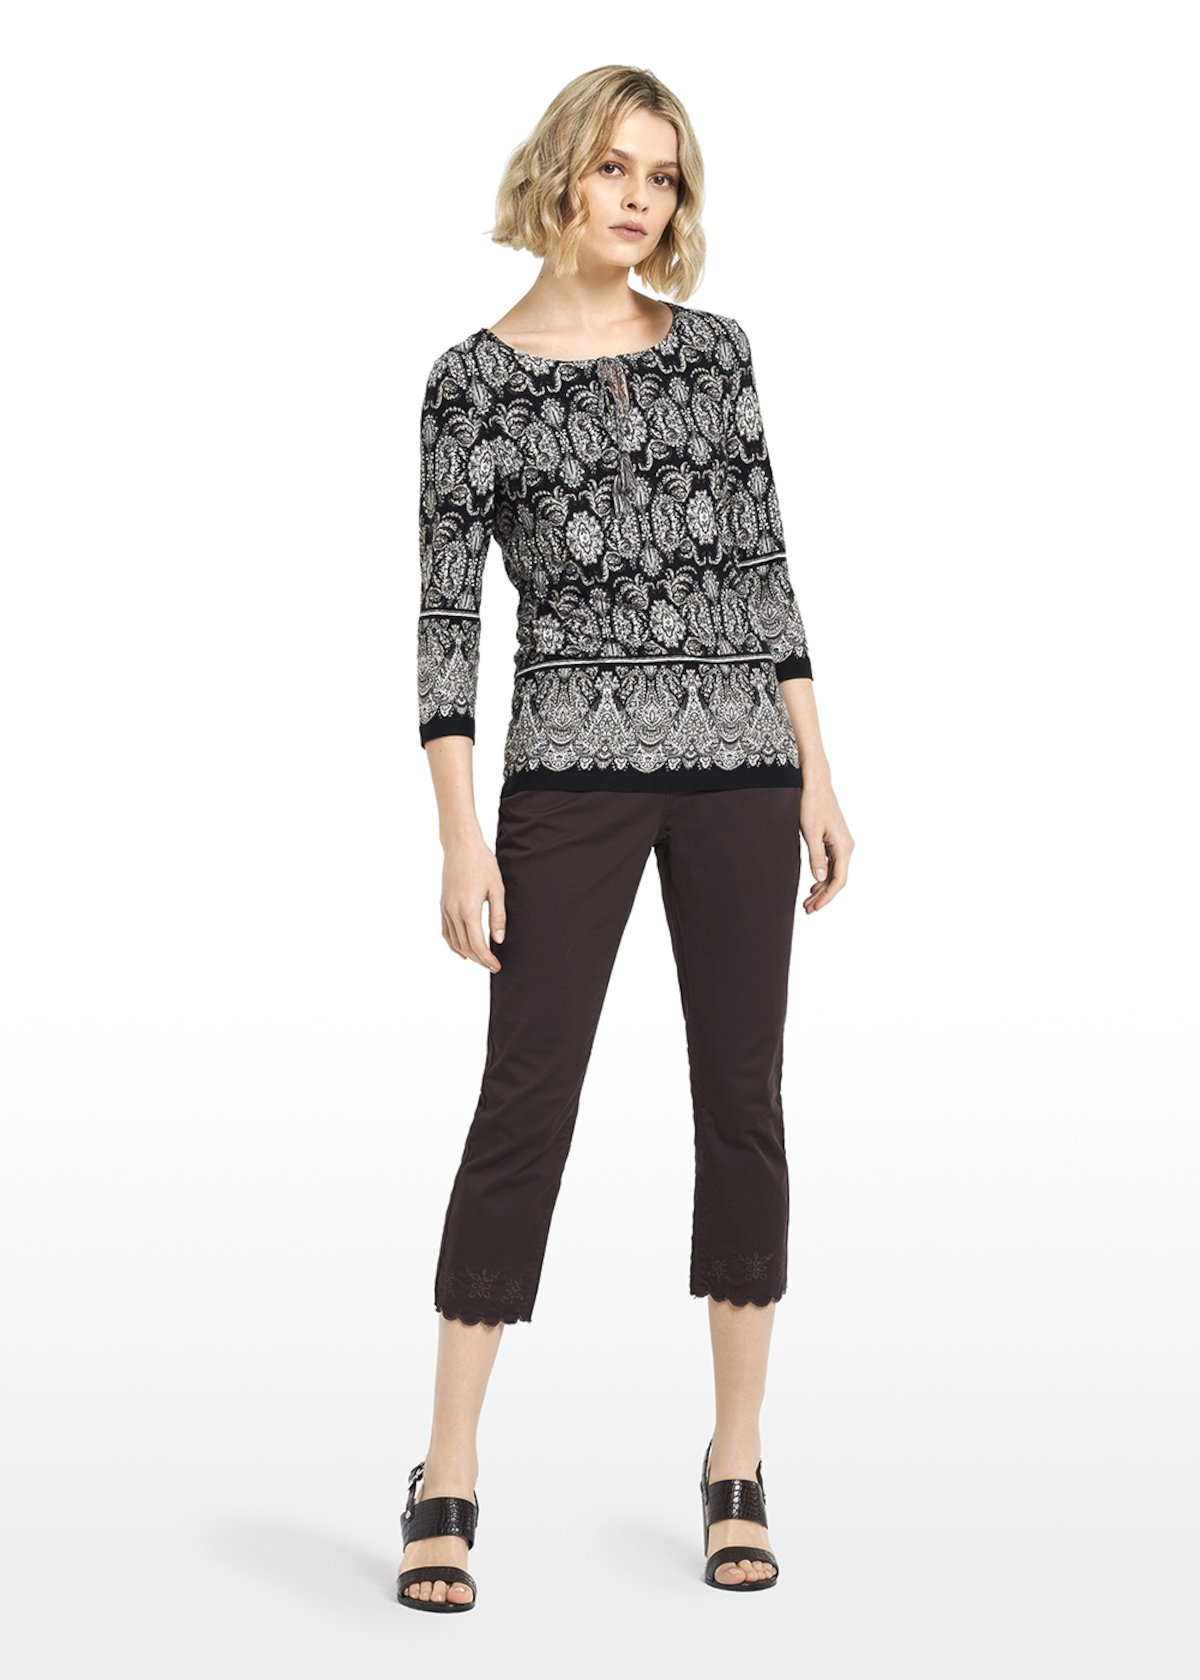 Sadar jersey t-shirt Paisley pattern with tassels - Black / White Fantasia - Woman - Category image